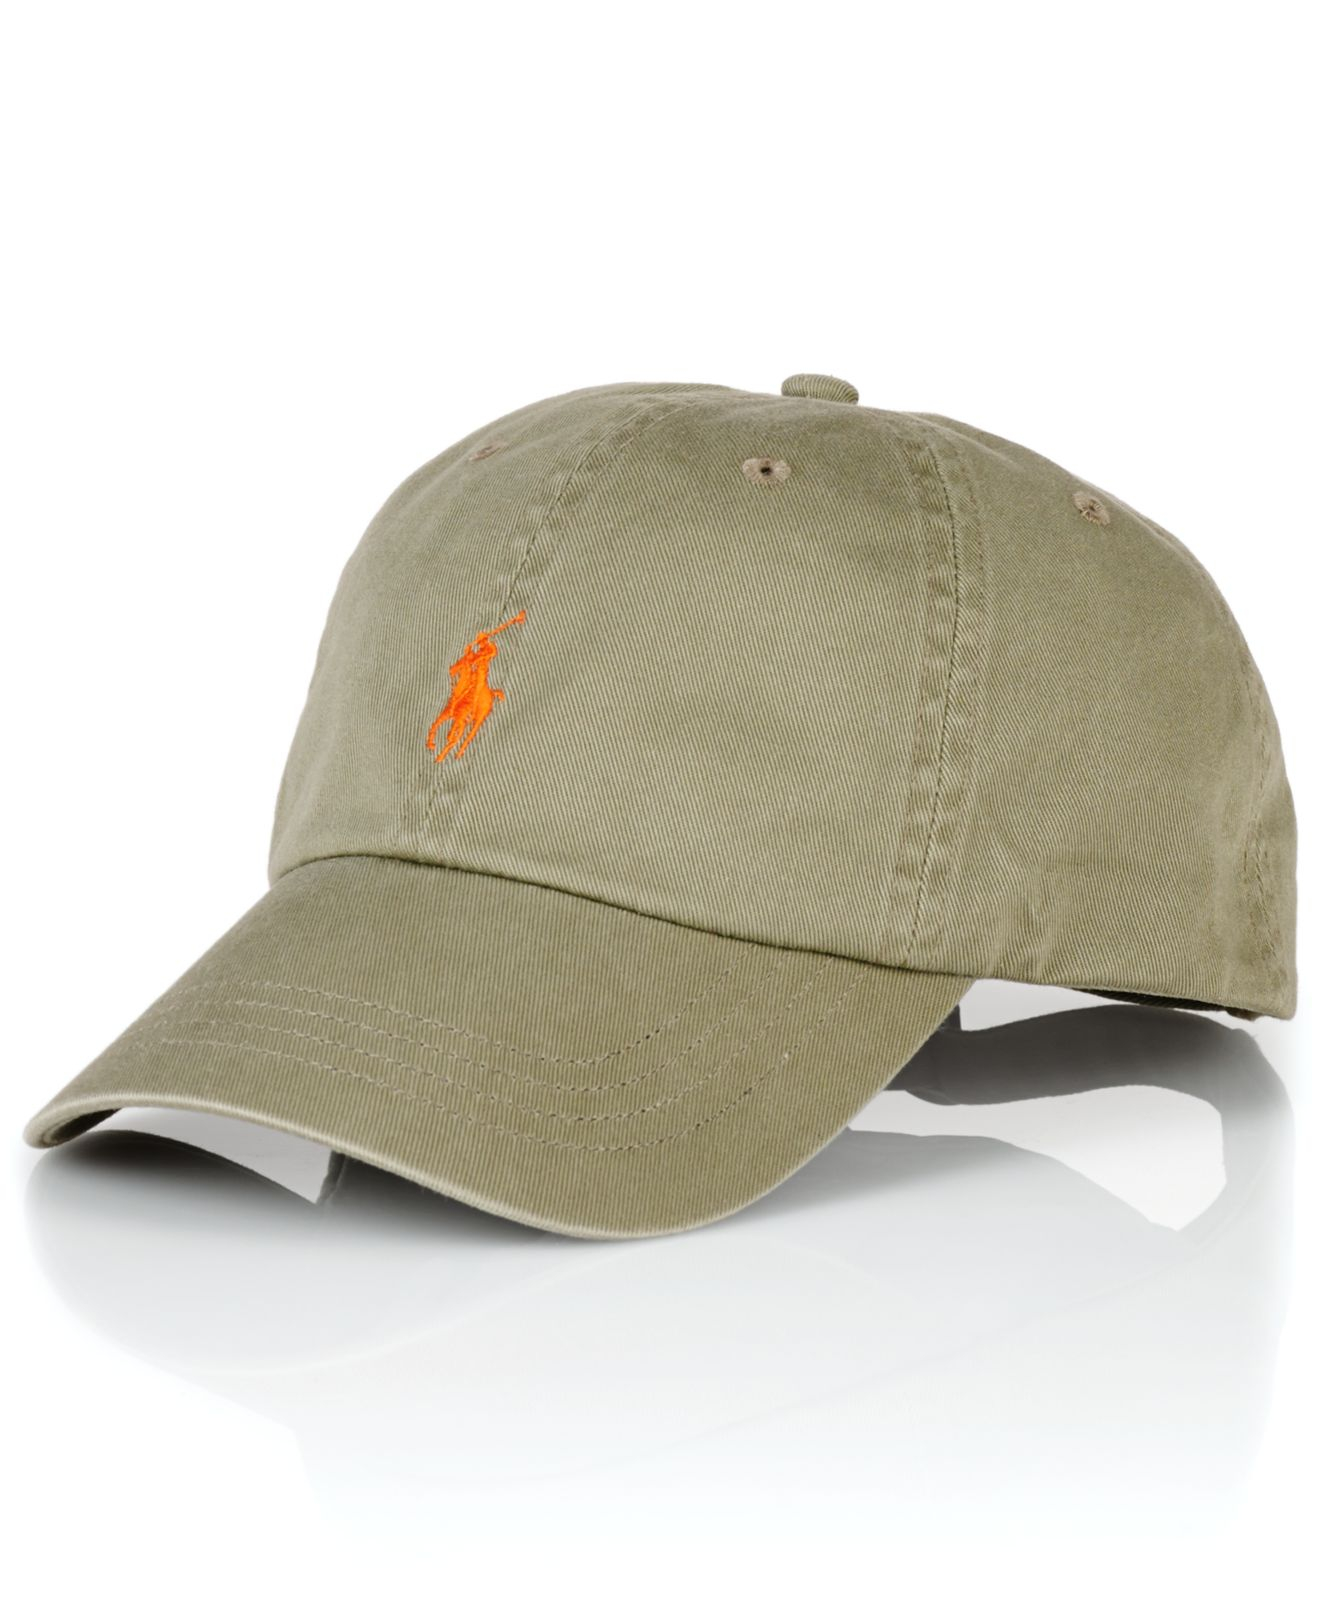 polo ralph lauren classic chino sports cap in green for. Black Bedroom Furniture Sets. Home Design Ideas